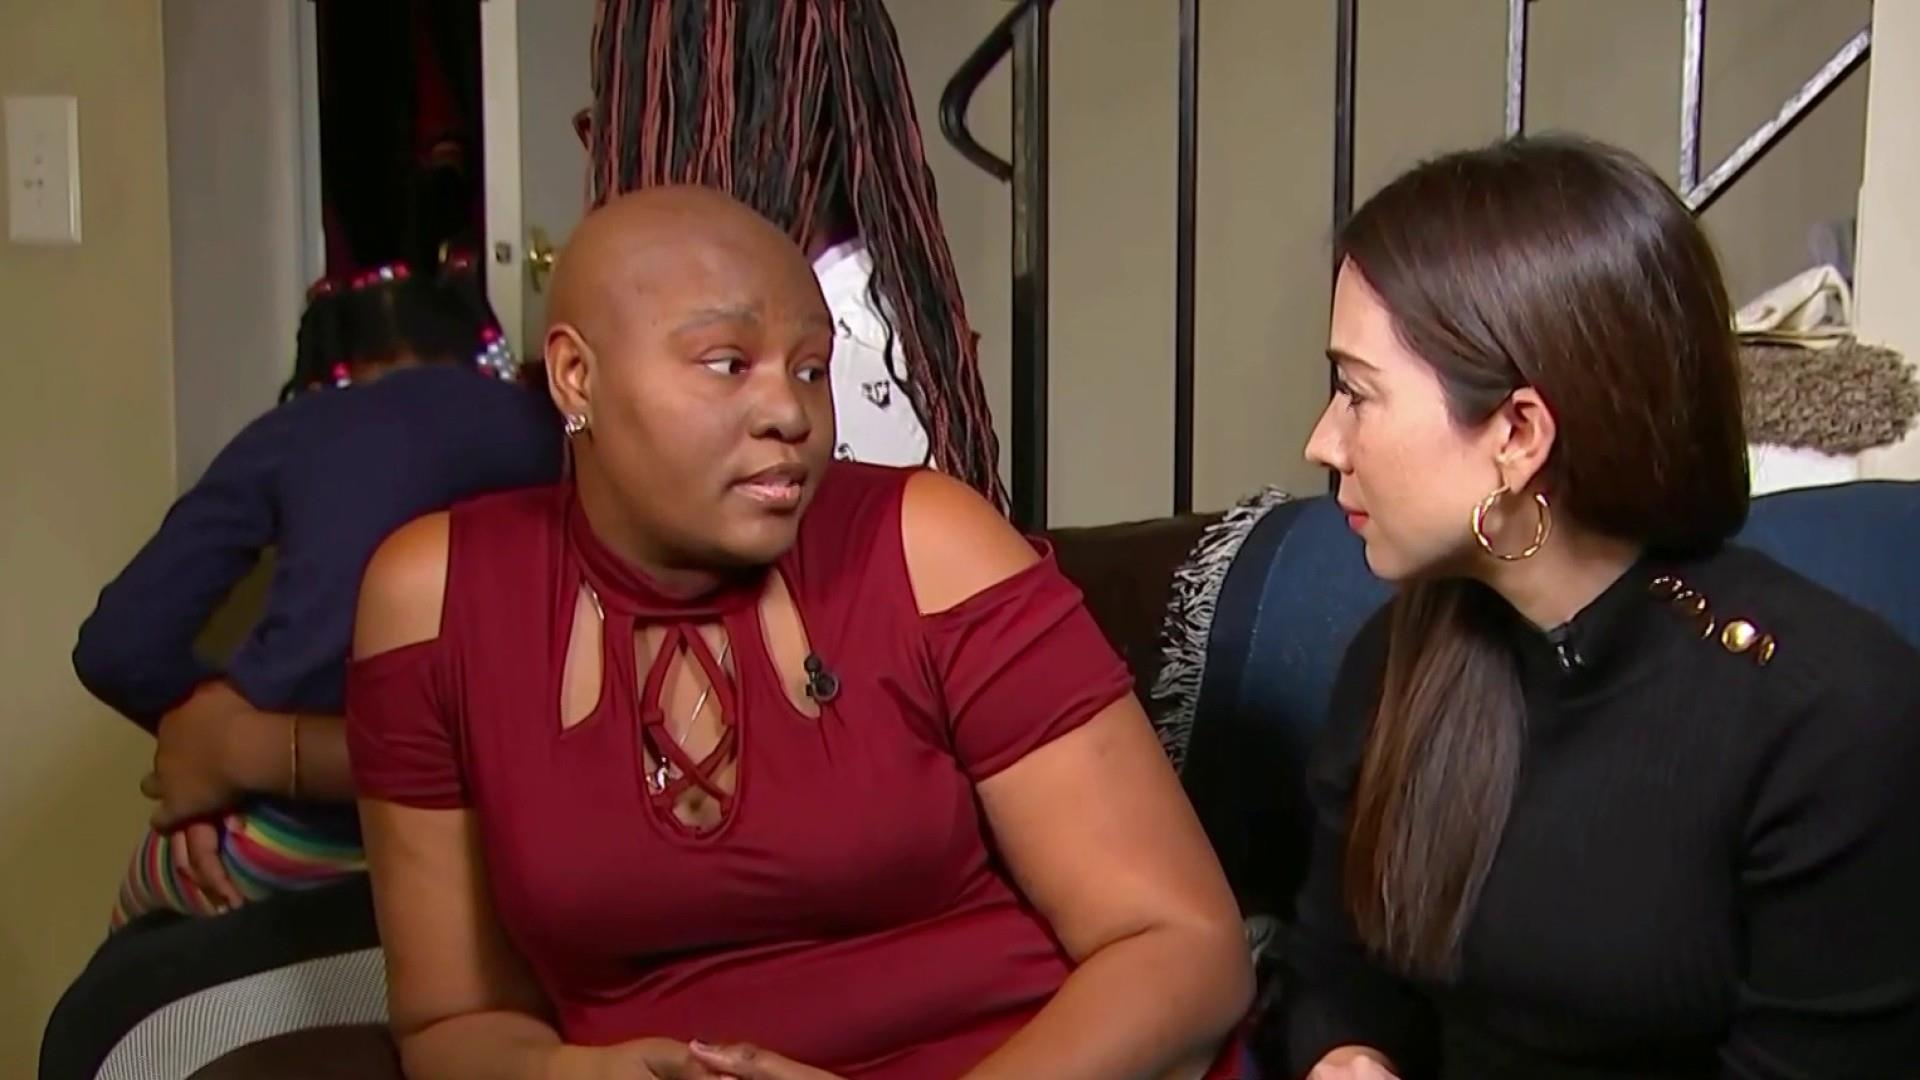 Furloughed worker concerned with rent, chemotherapy